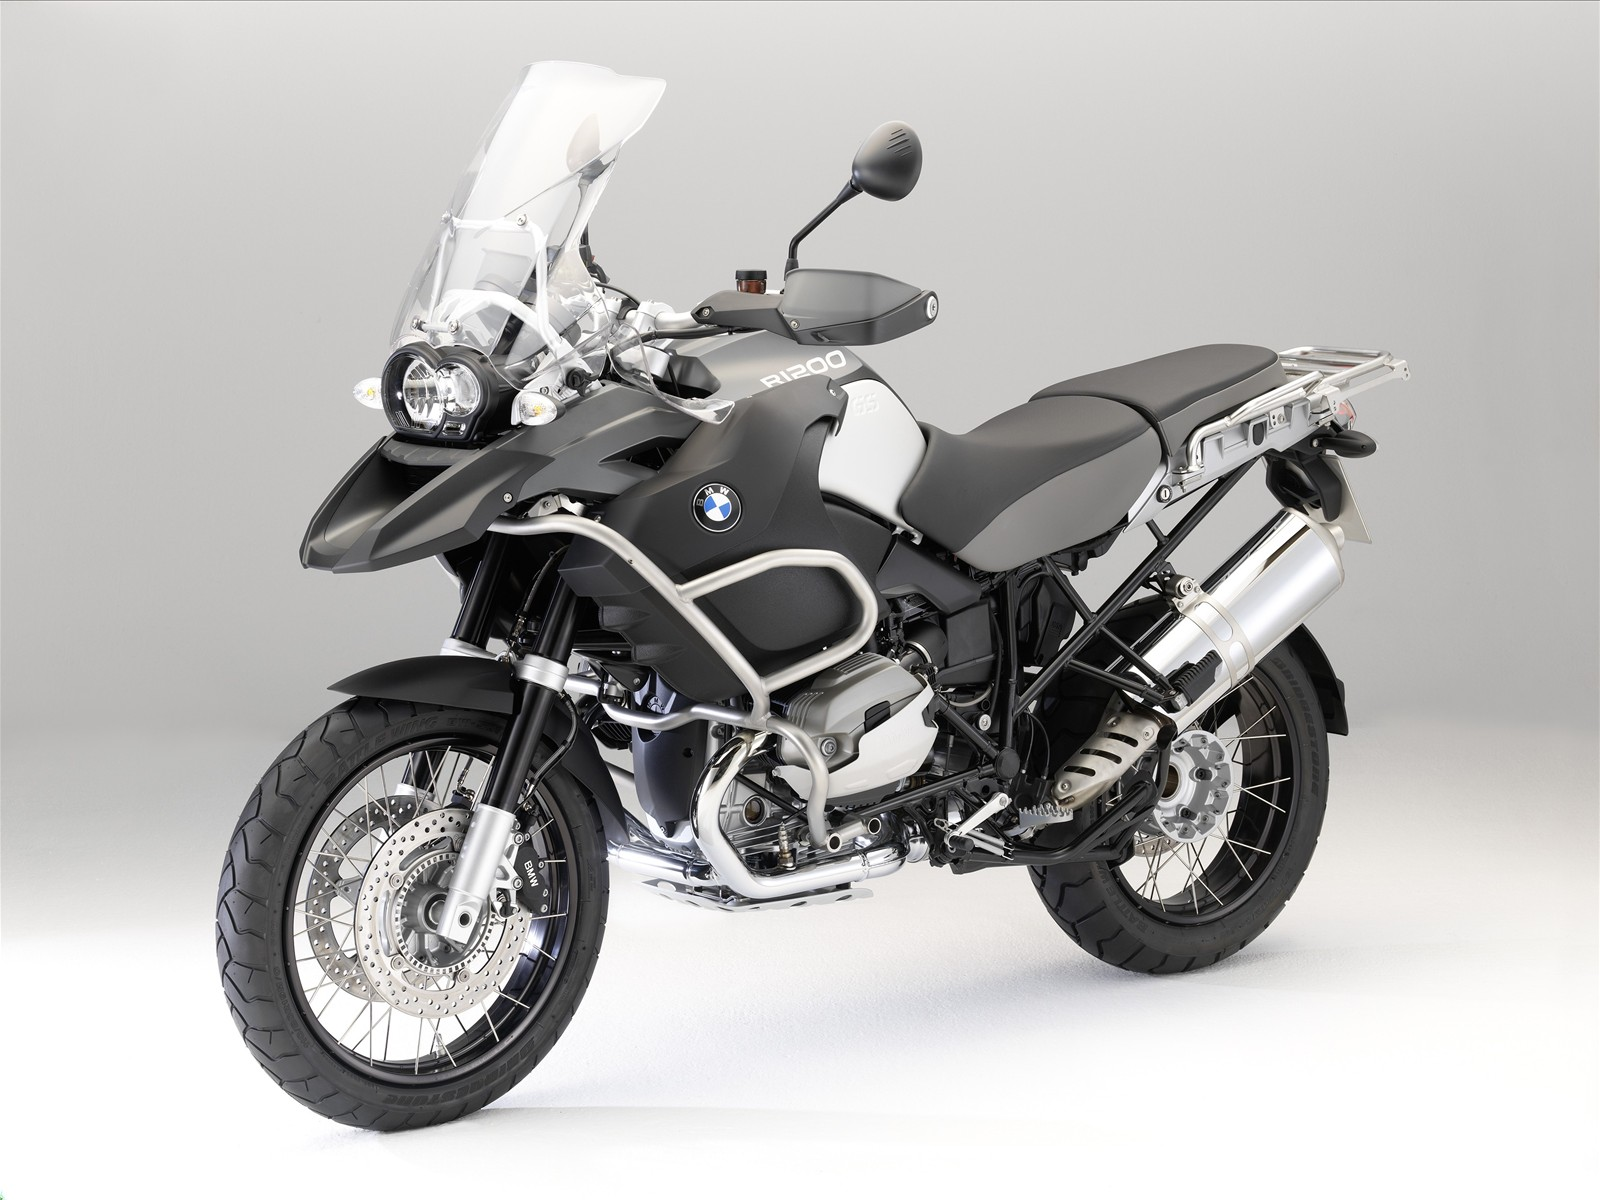 http://3.bp.blogspot.com/_71VYESfu88A/SwIGEMz-FcI/AAAAAAAABNc/T_QS-JL0YSA/s1600/The-New-BMW-R-1200-GS-Adventure-29.jpg